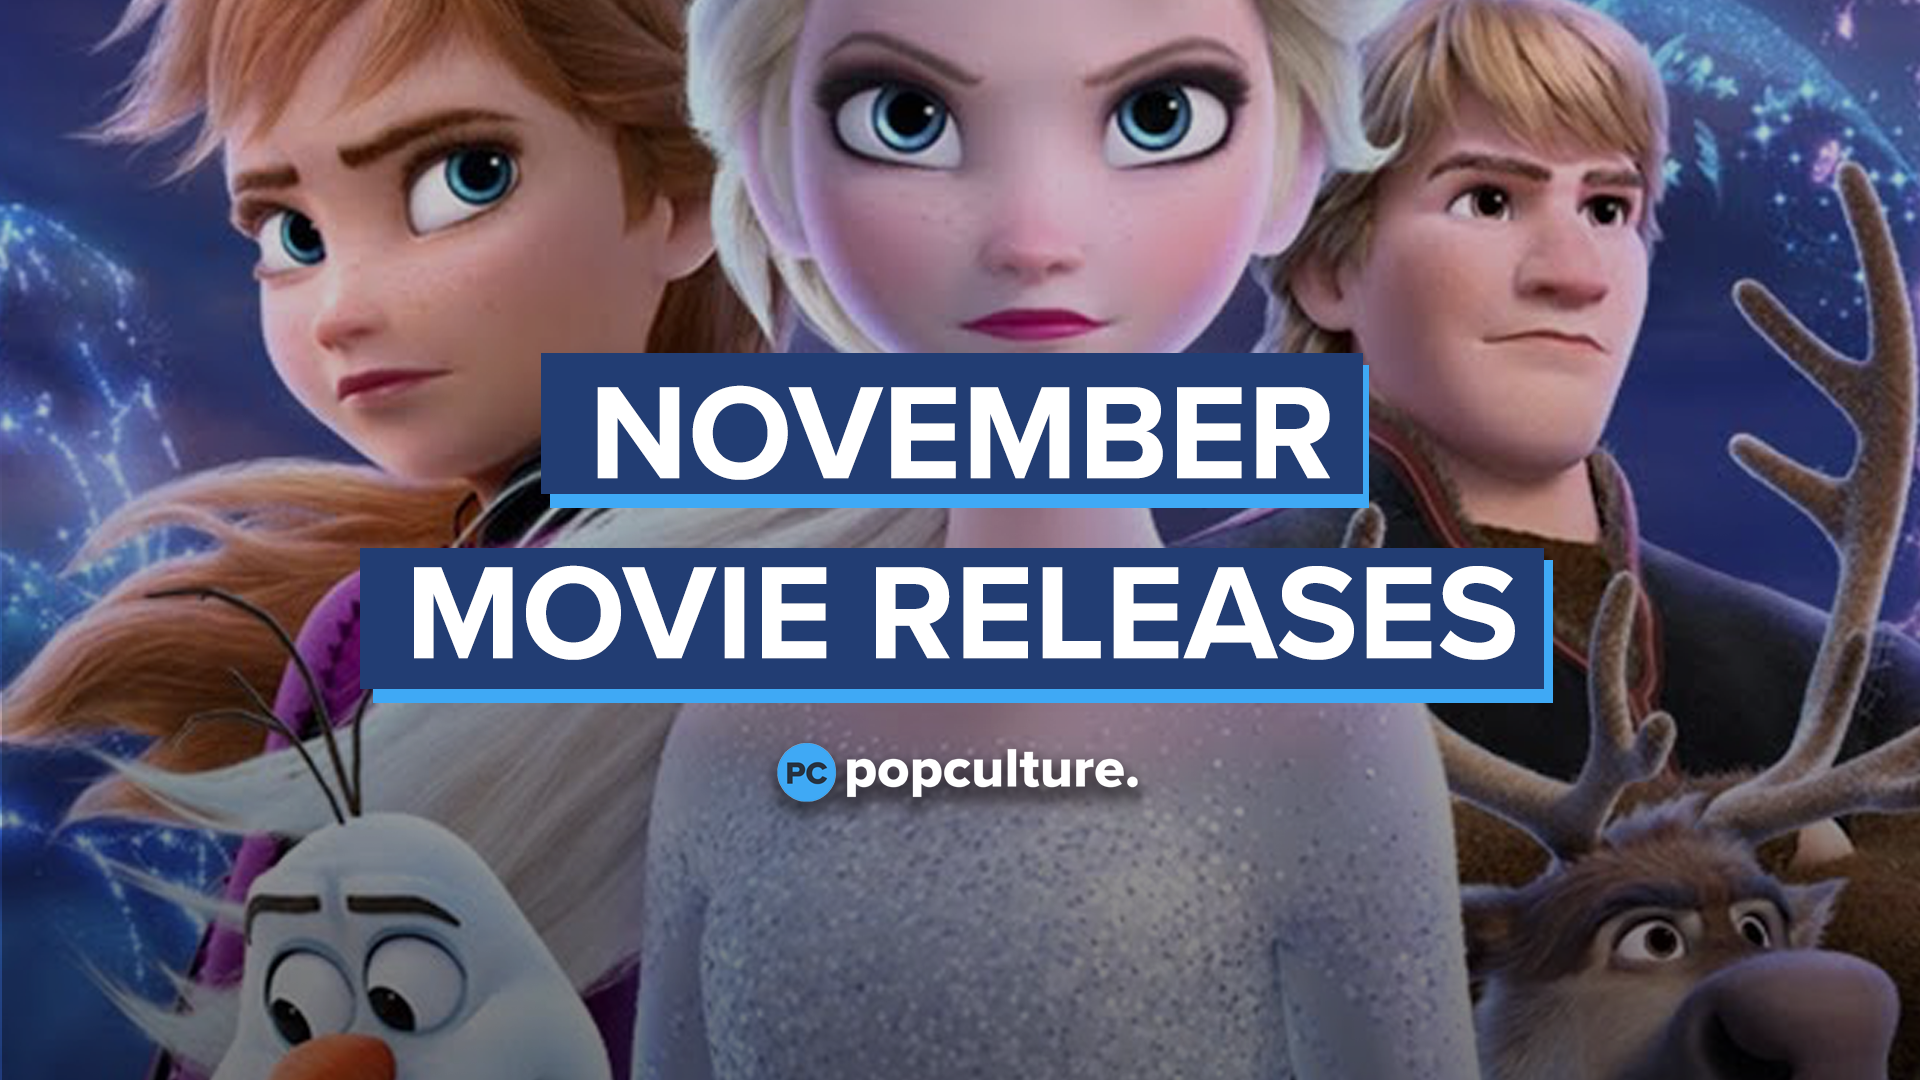 Movies Coming To Theaters in November 2019 - PopCulture screen capture